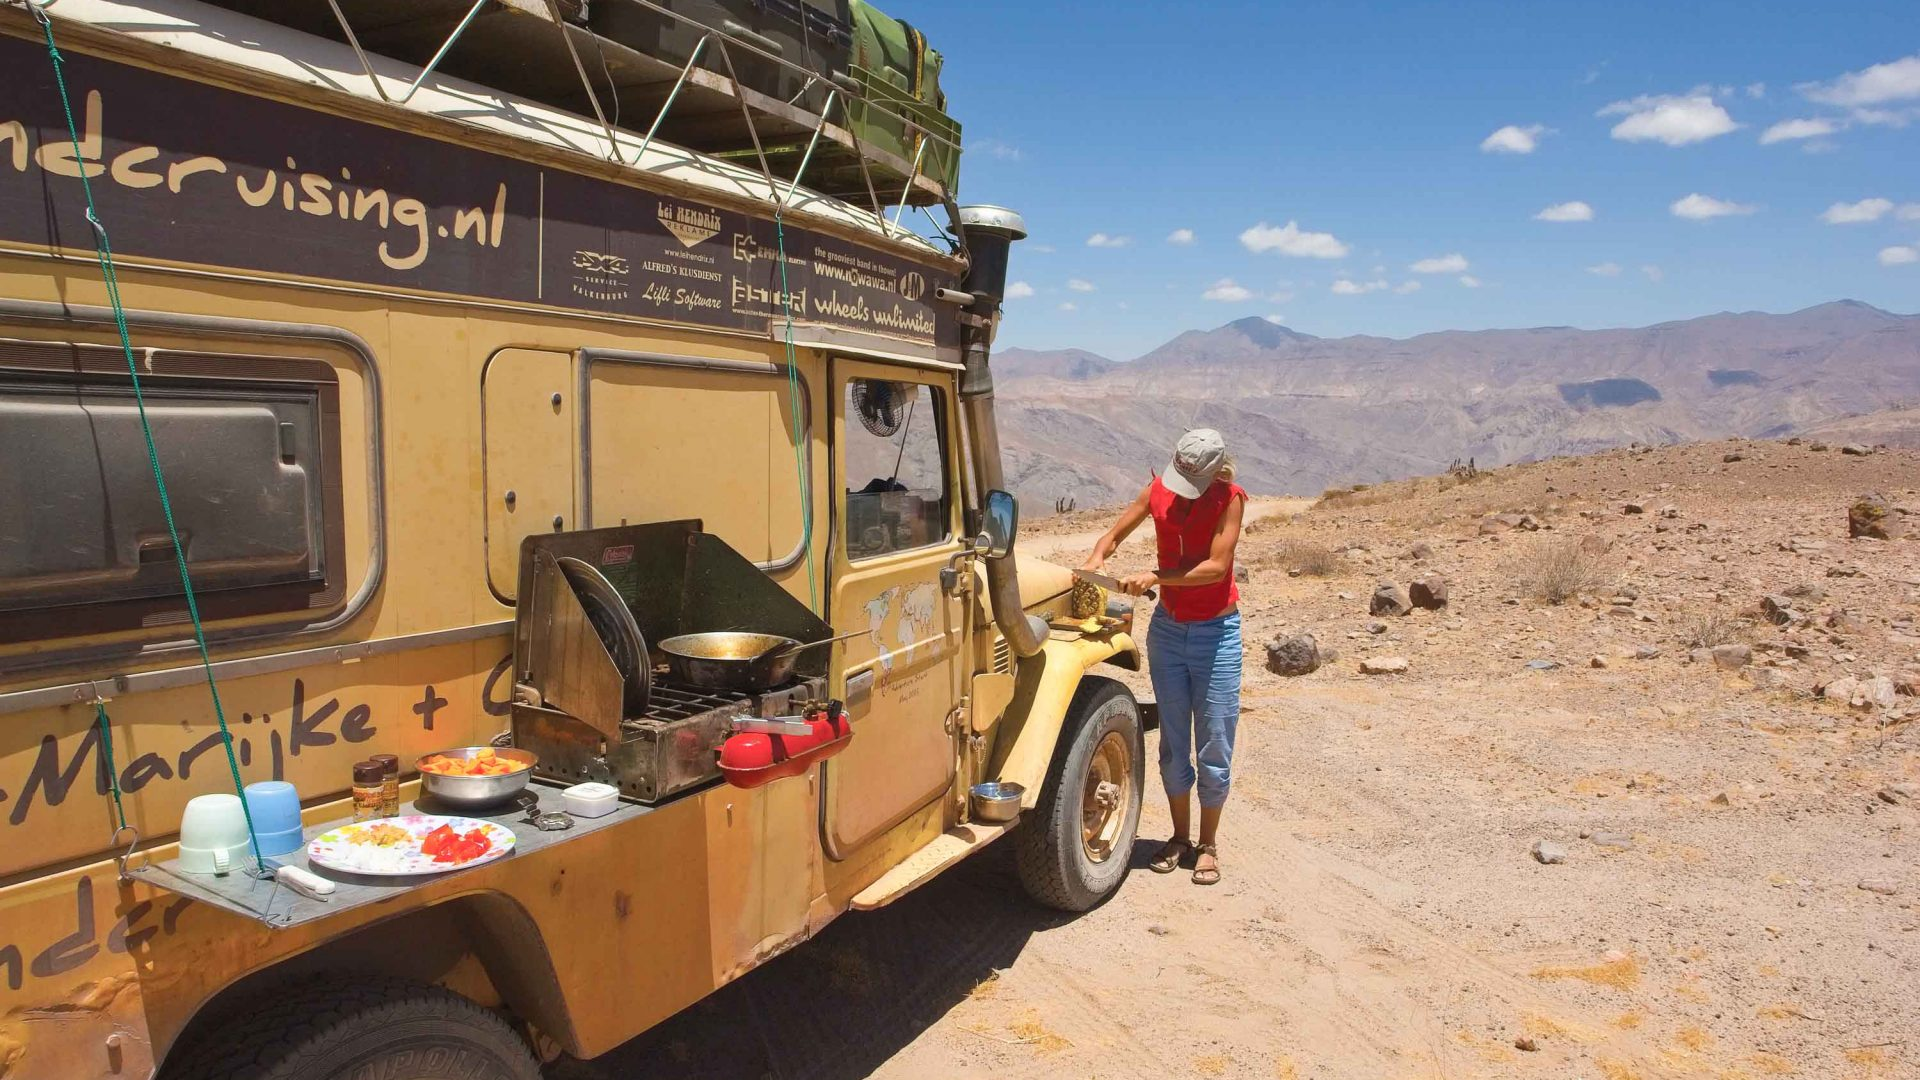 Karin Marijk prepares dinner in their Land Cruiser in Brazil.